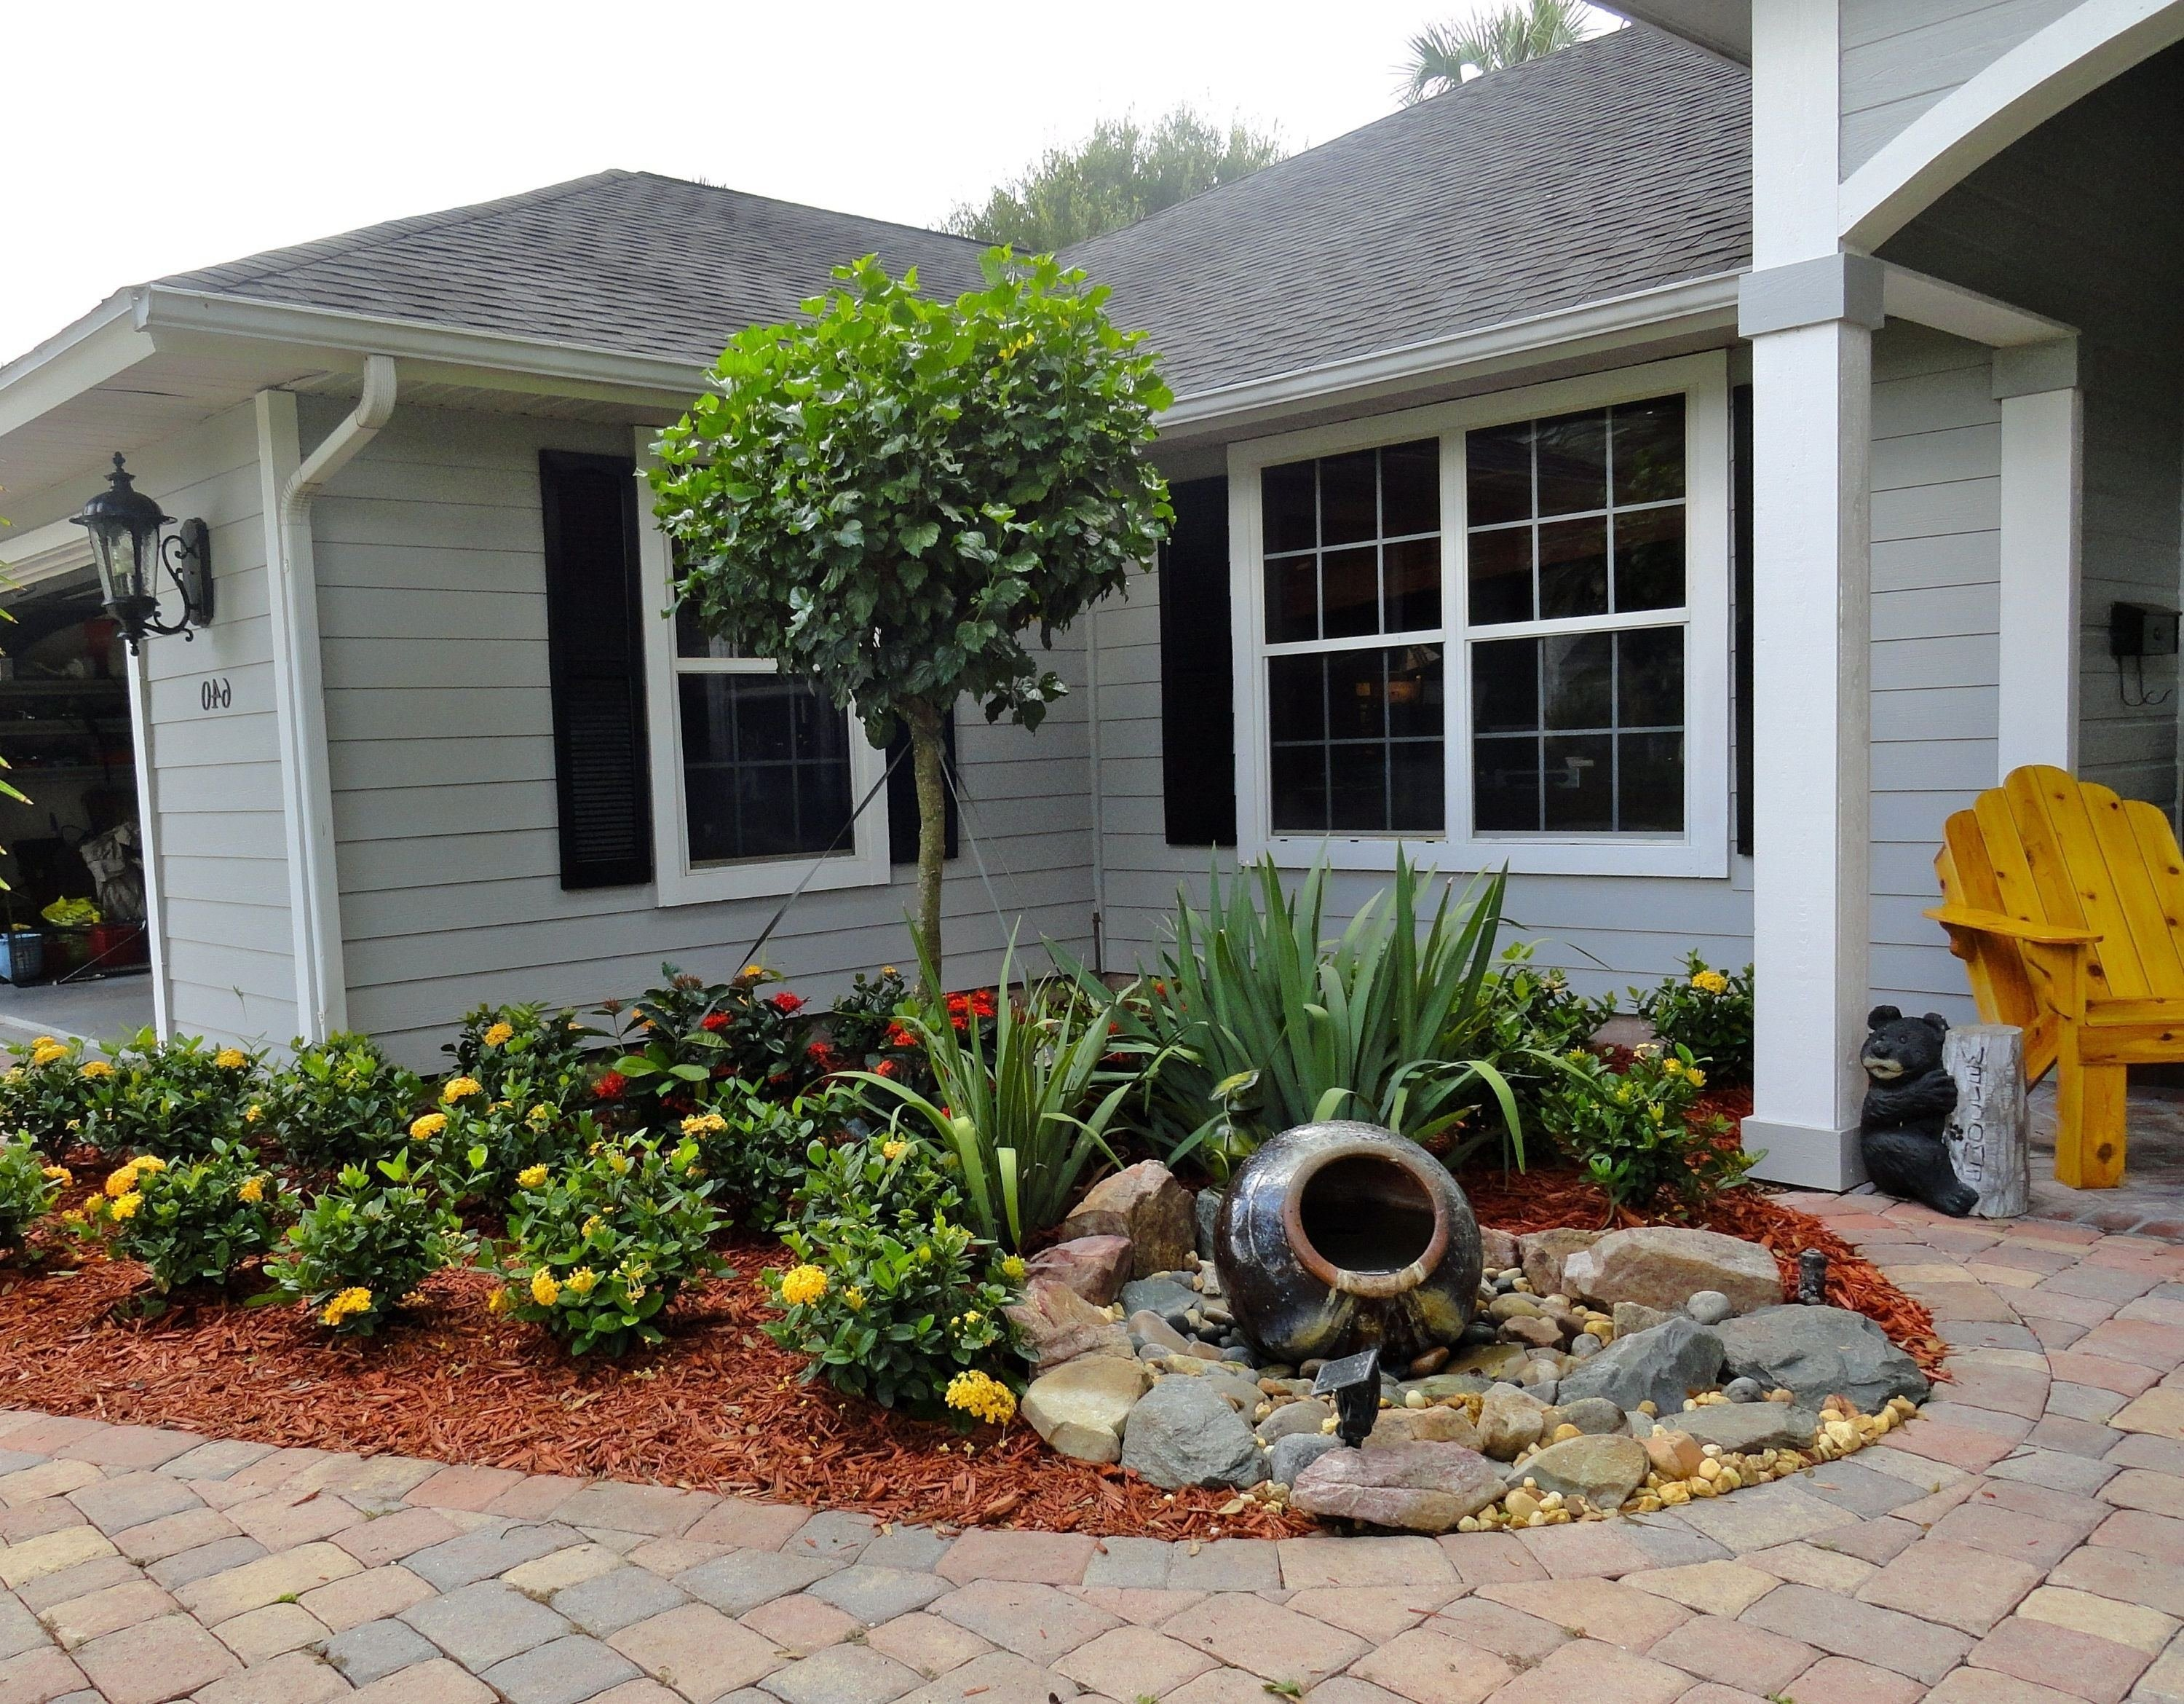 10 Pretty Small Front Yard Landscaping Ideas On A Budget 2020